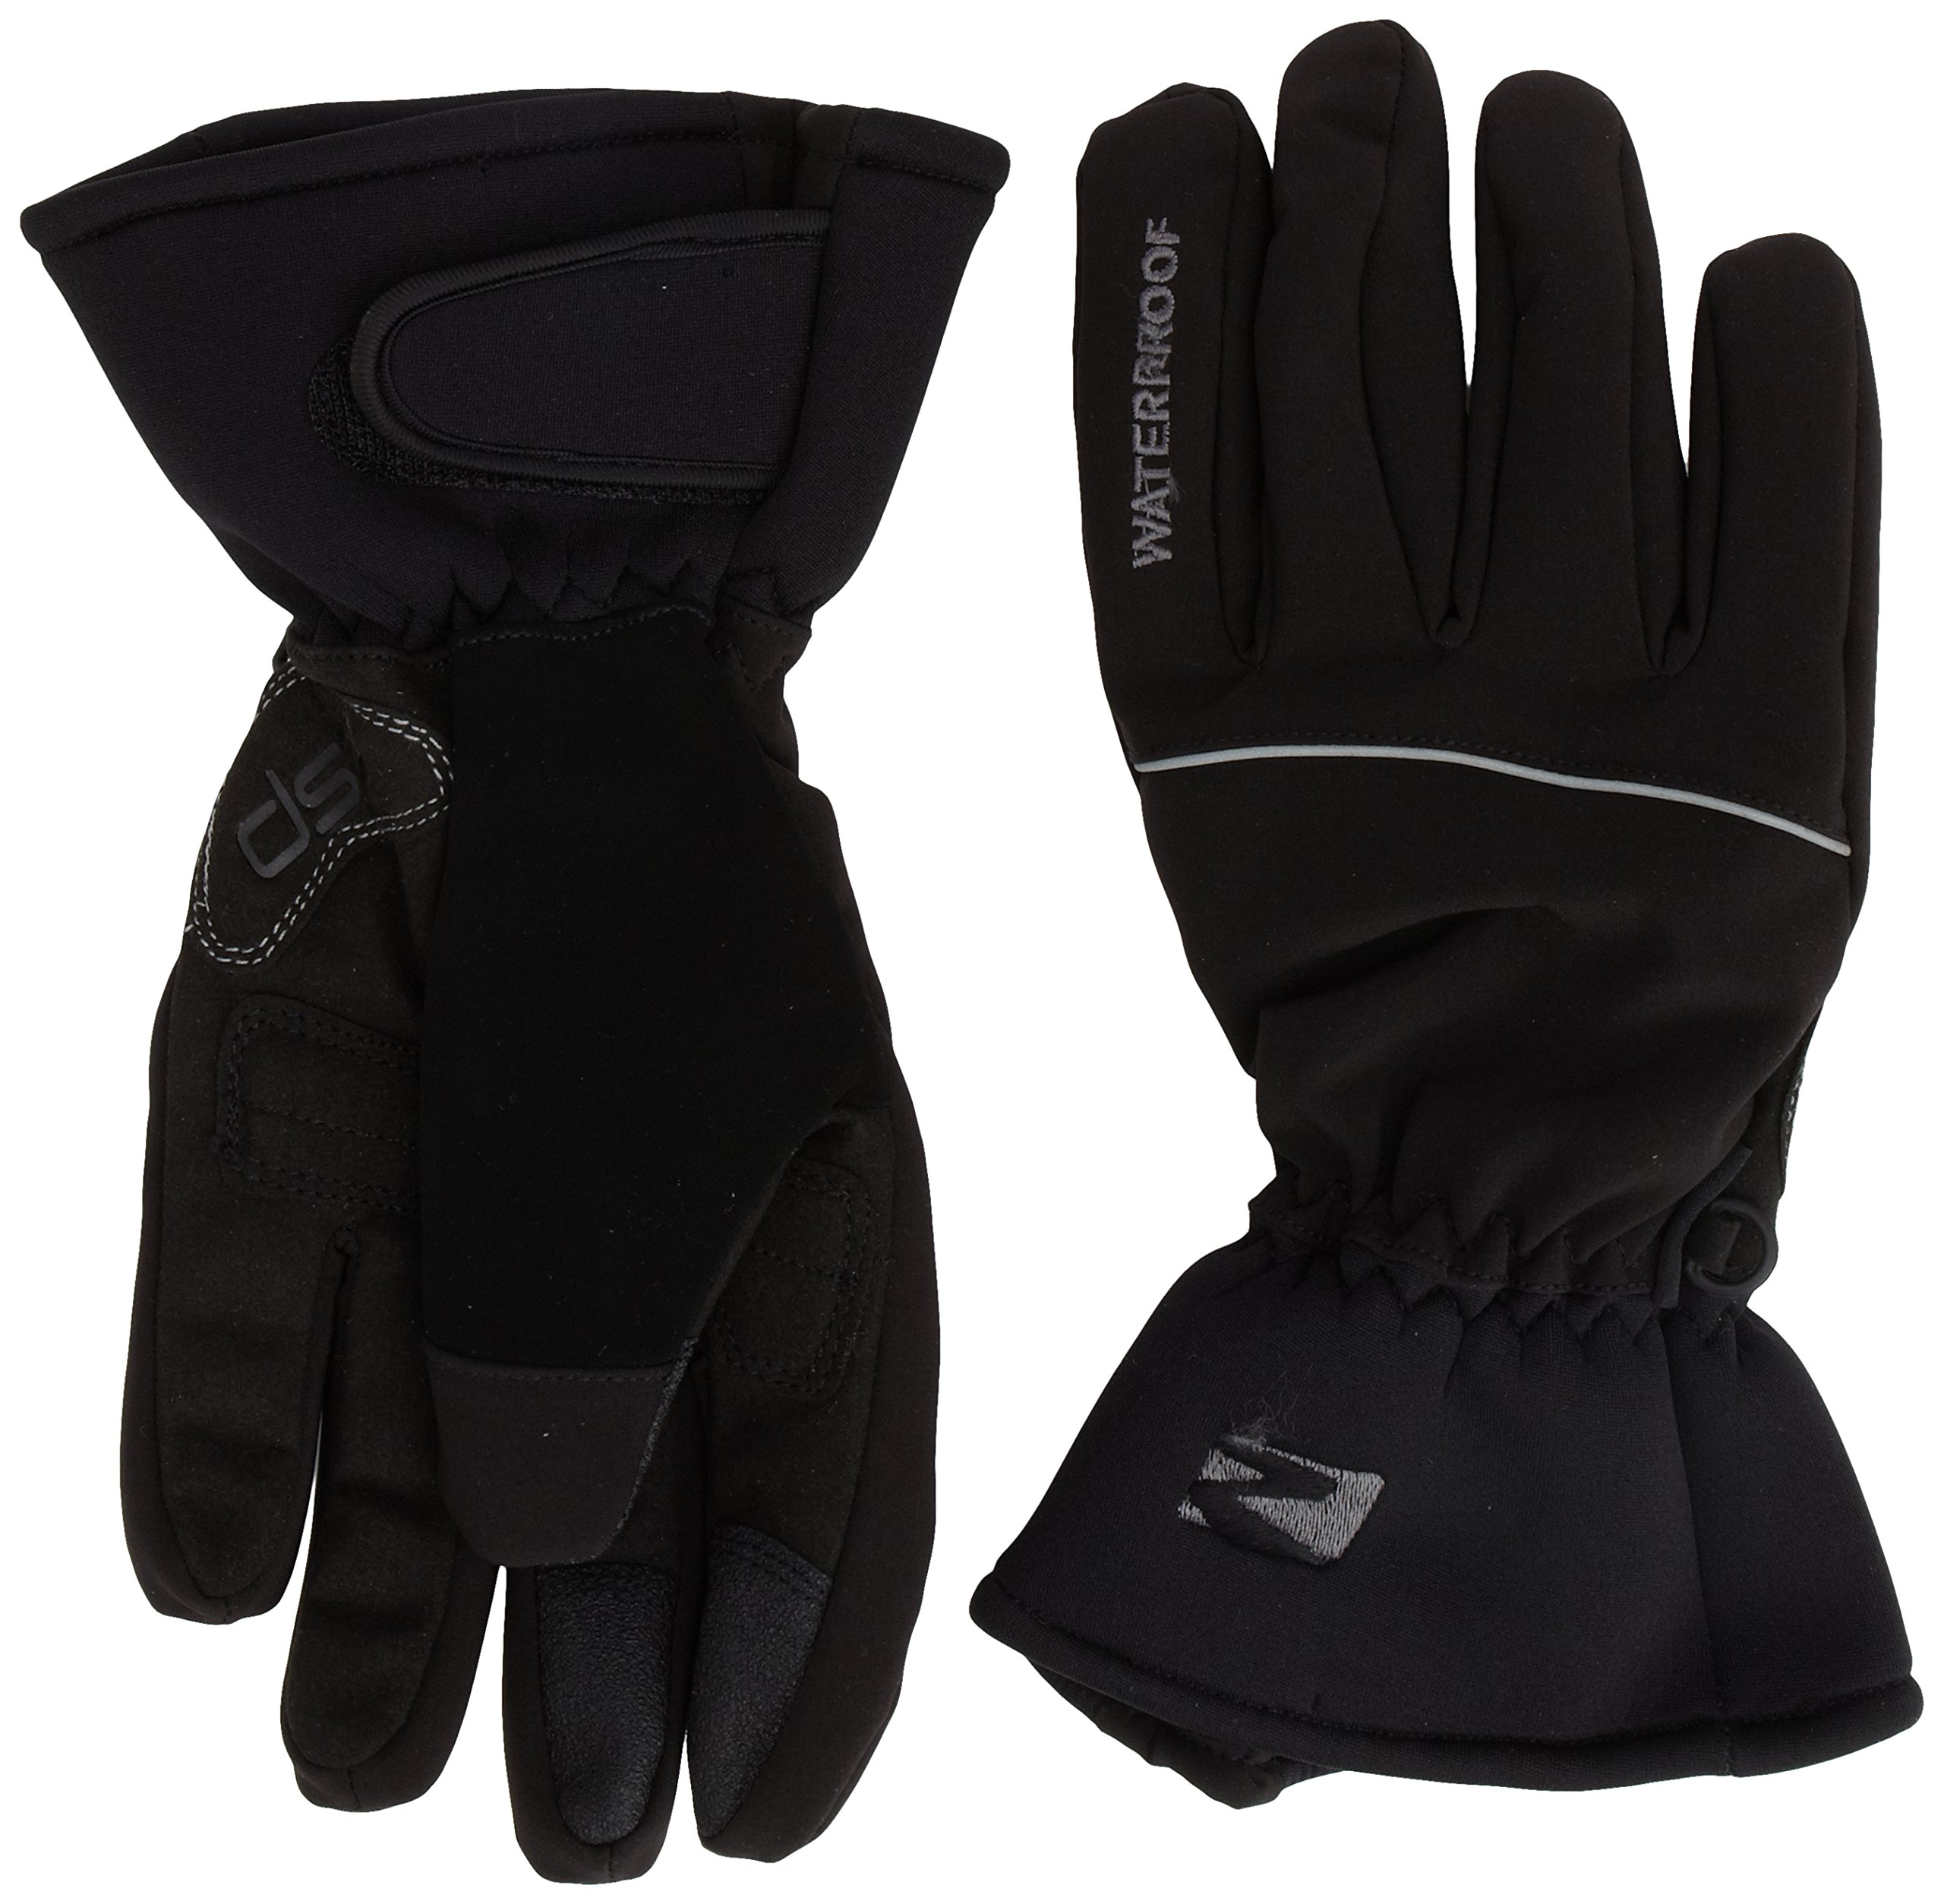 RSP Unisex Extreme Weather Glove Black Medium by RSP